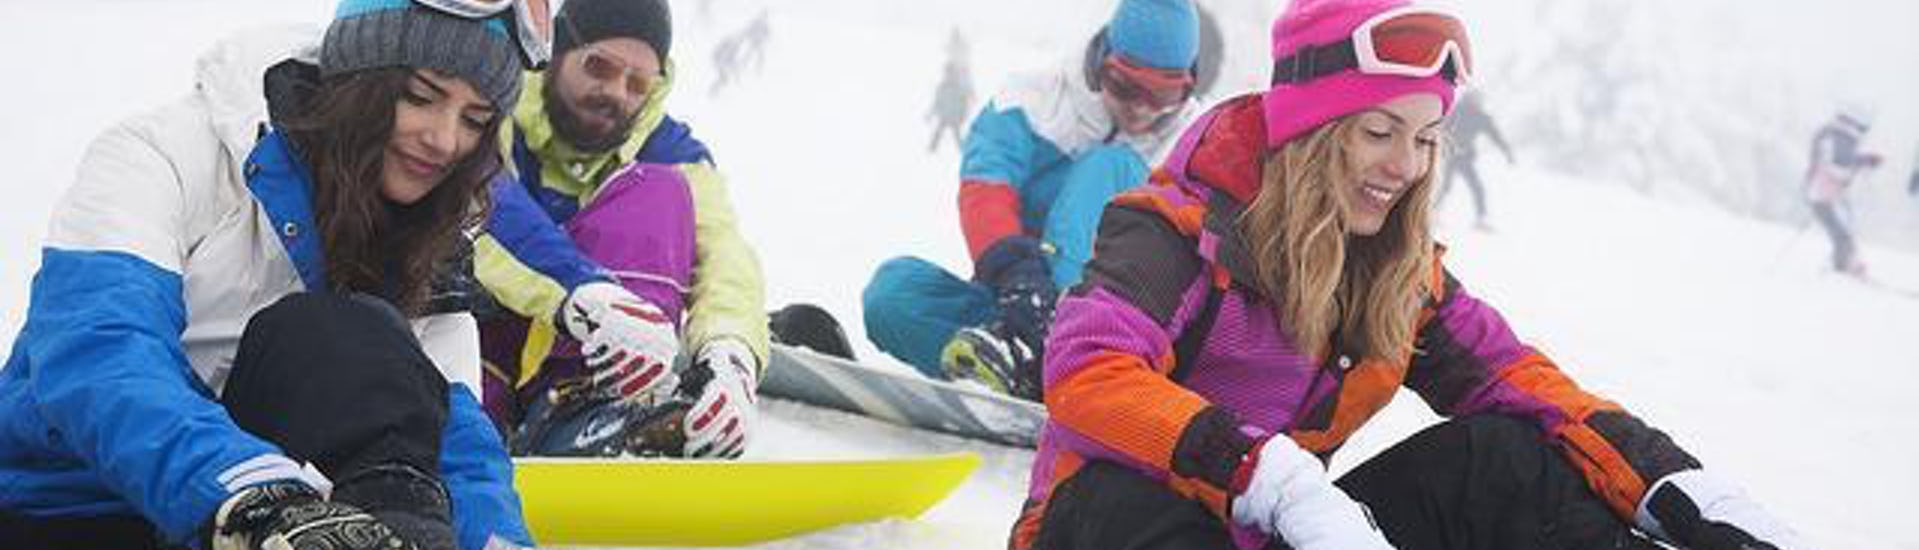 A group of snowboarders are sitting in the snow, fixing their boards to their feet before their Snowboarding Lessons for Kids & Adults -Morning - Low Season with the ski school ESI Easy2Ride Morzine.